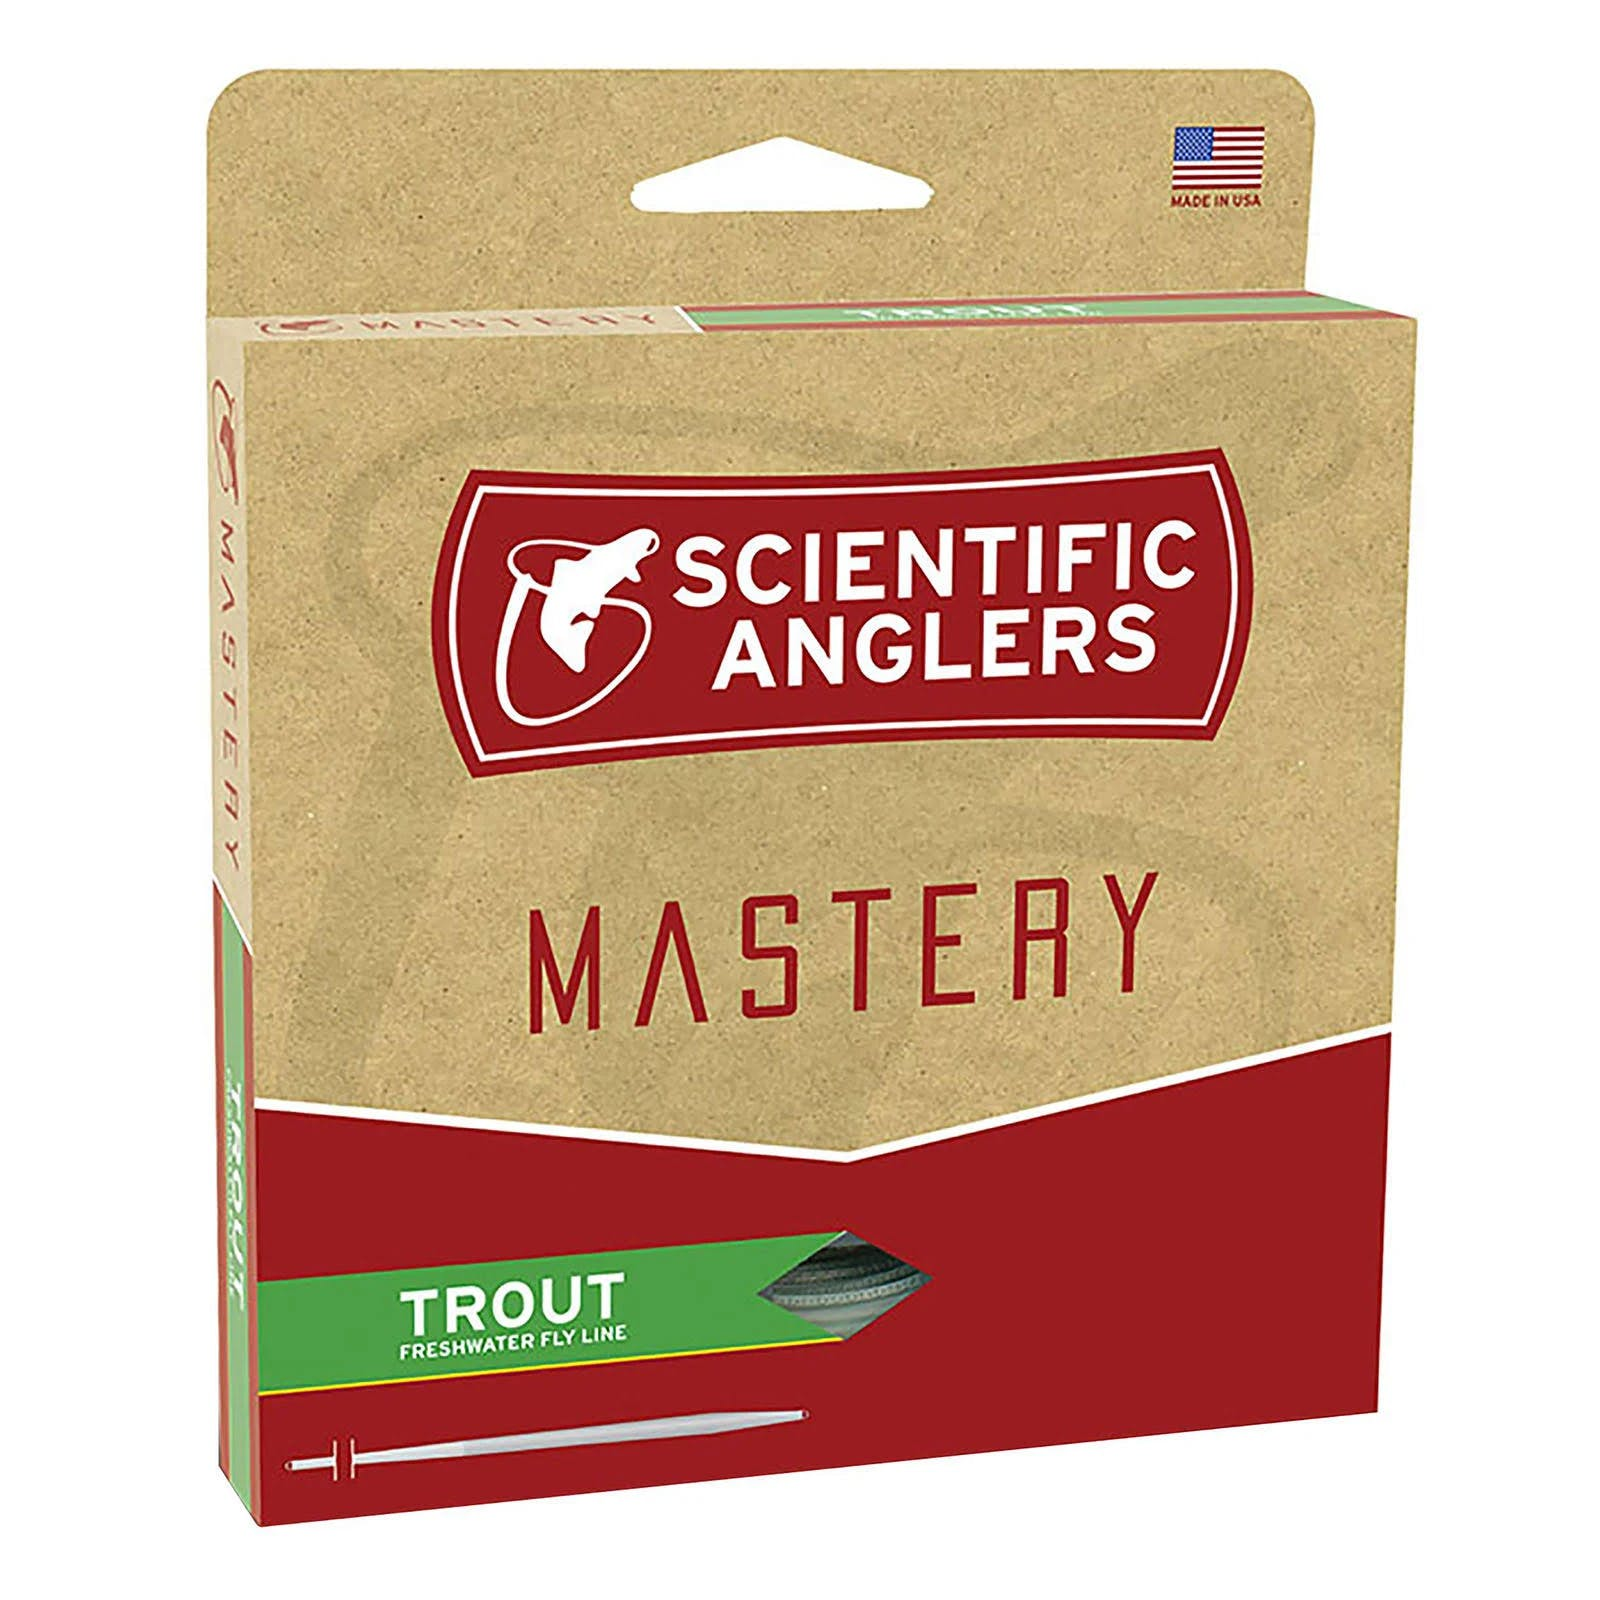 Scientific Anglers Mastery Trout Fly Line - WF5F